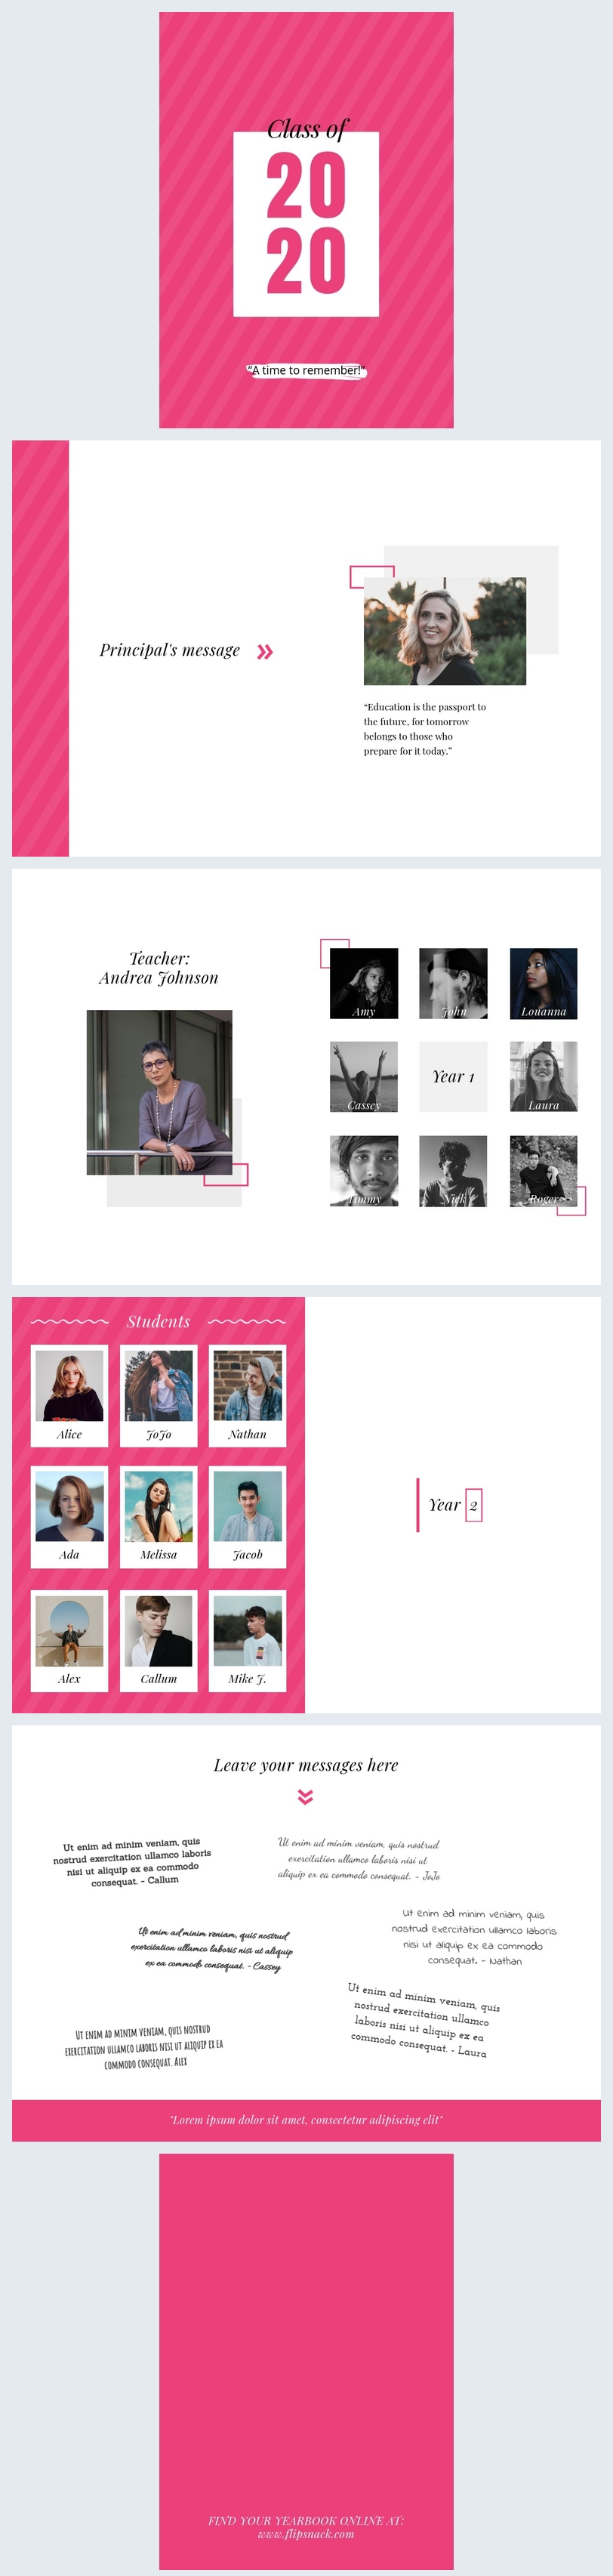 Customizable Yearbook Design Layout